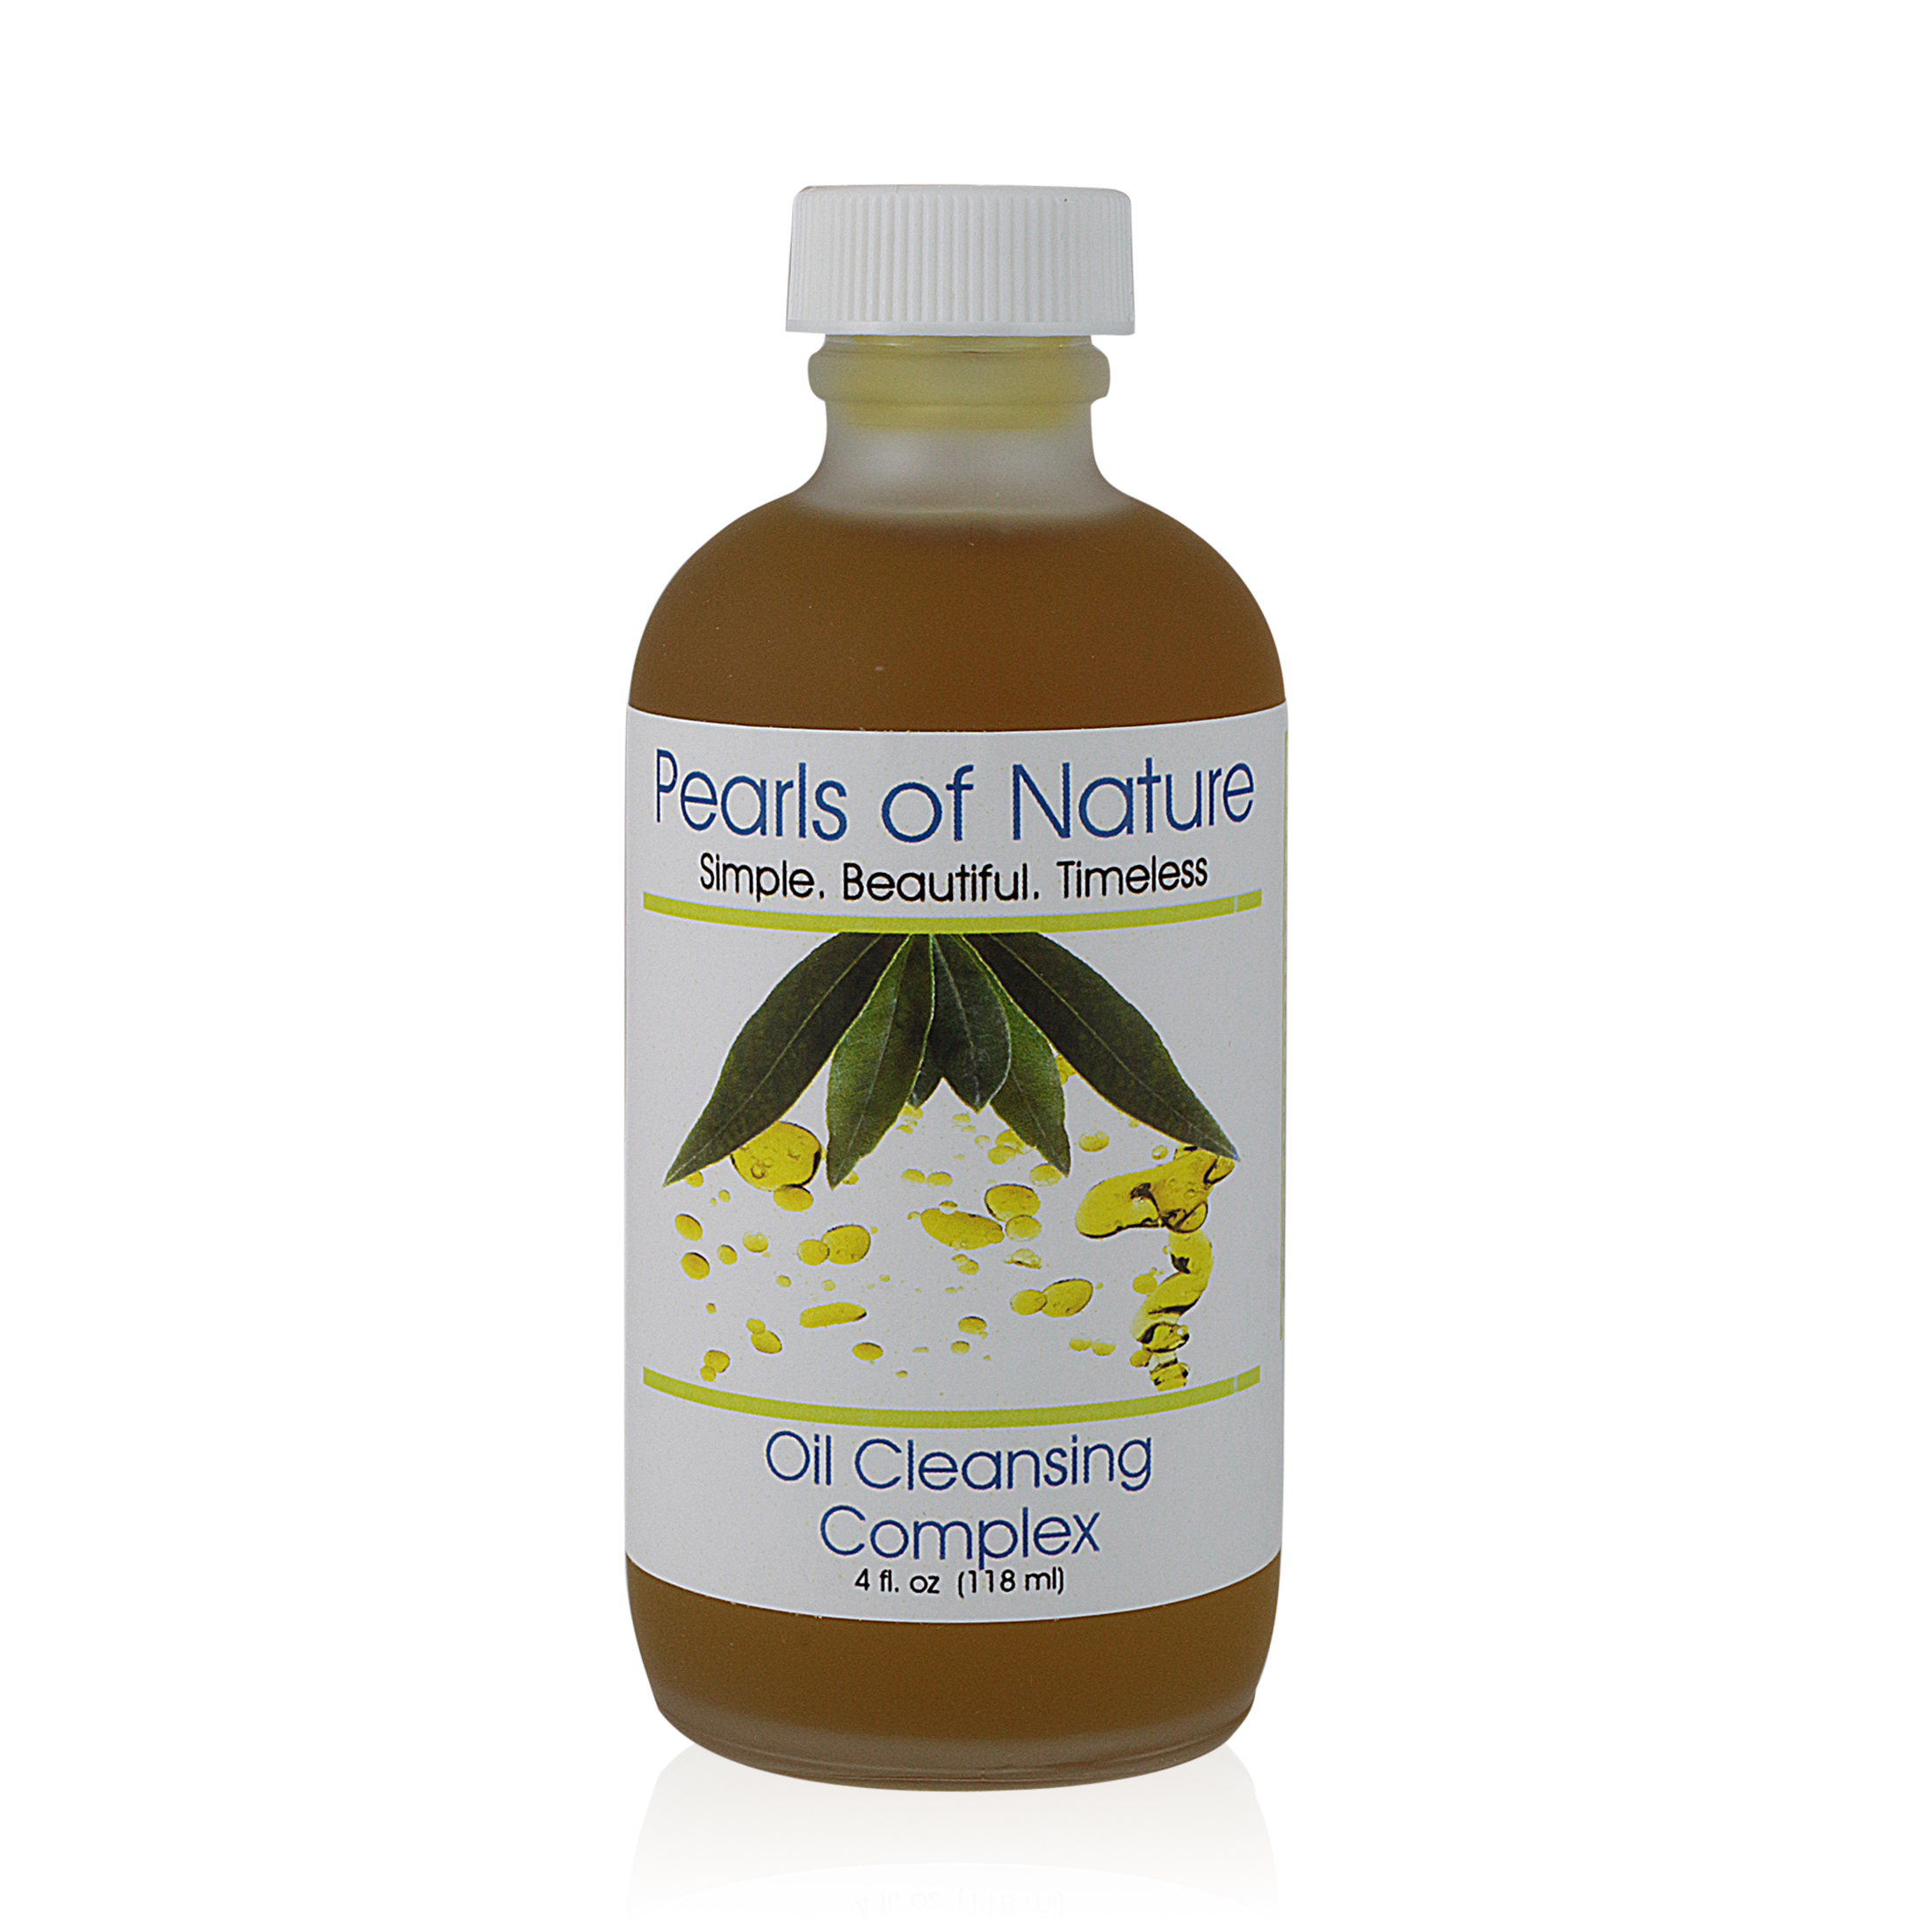 Oil Cleansing Complex